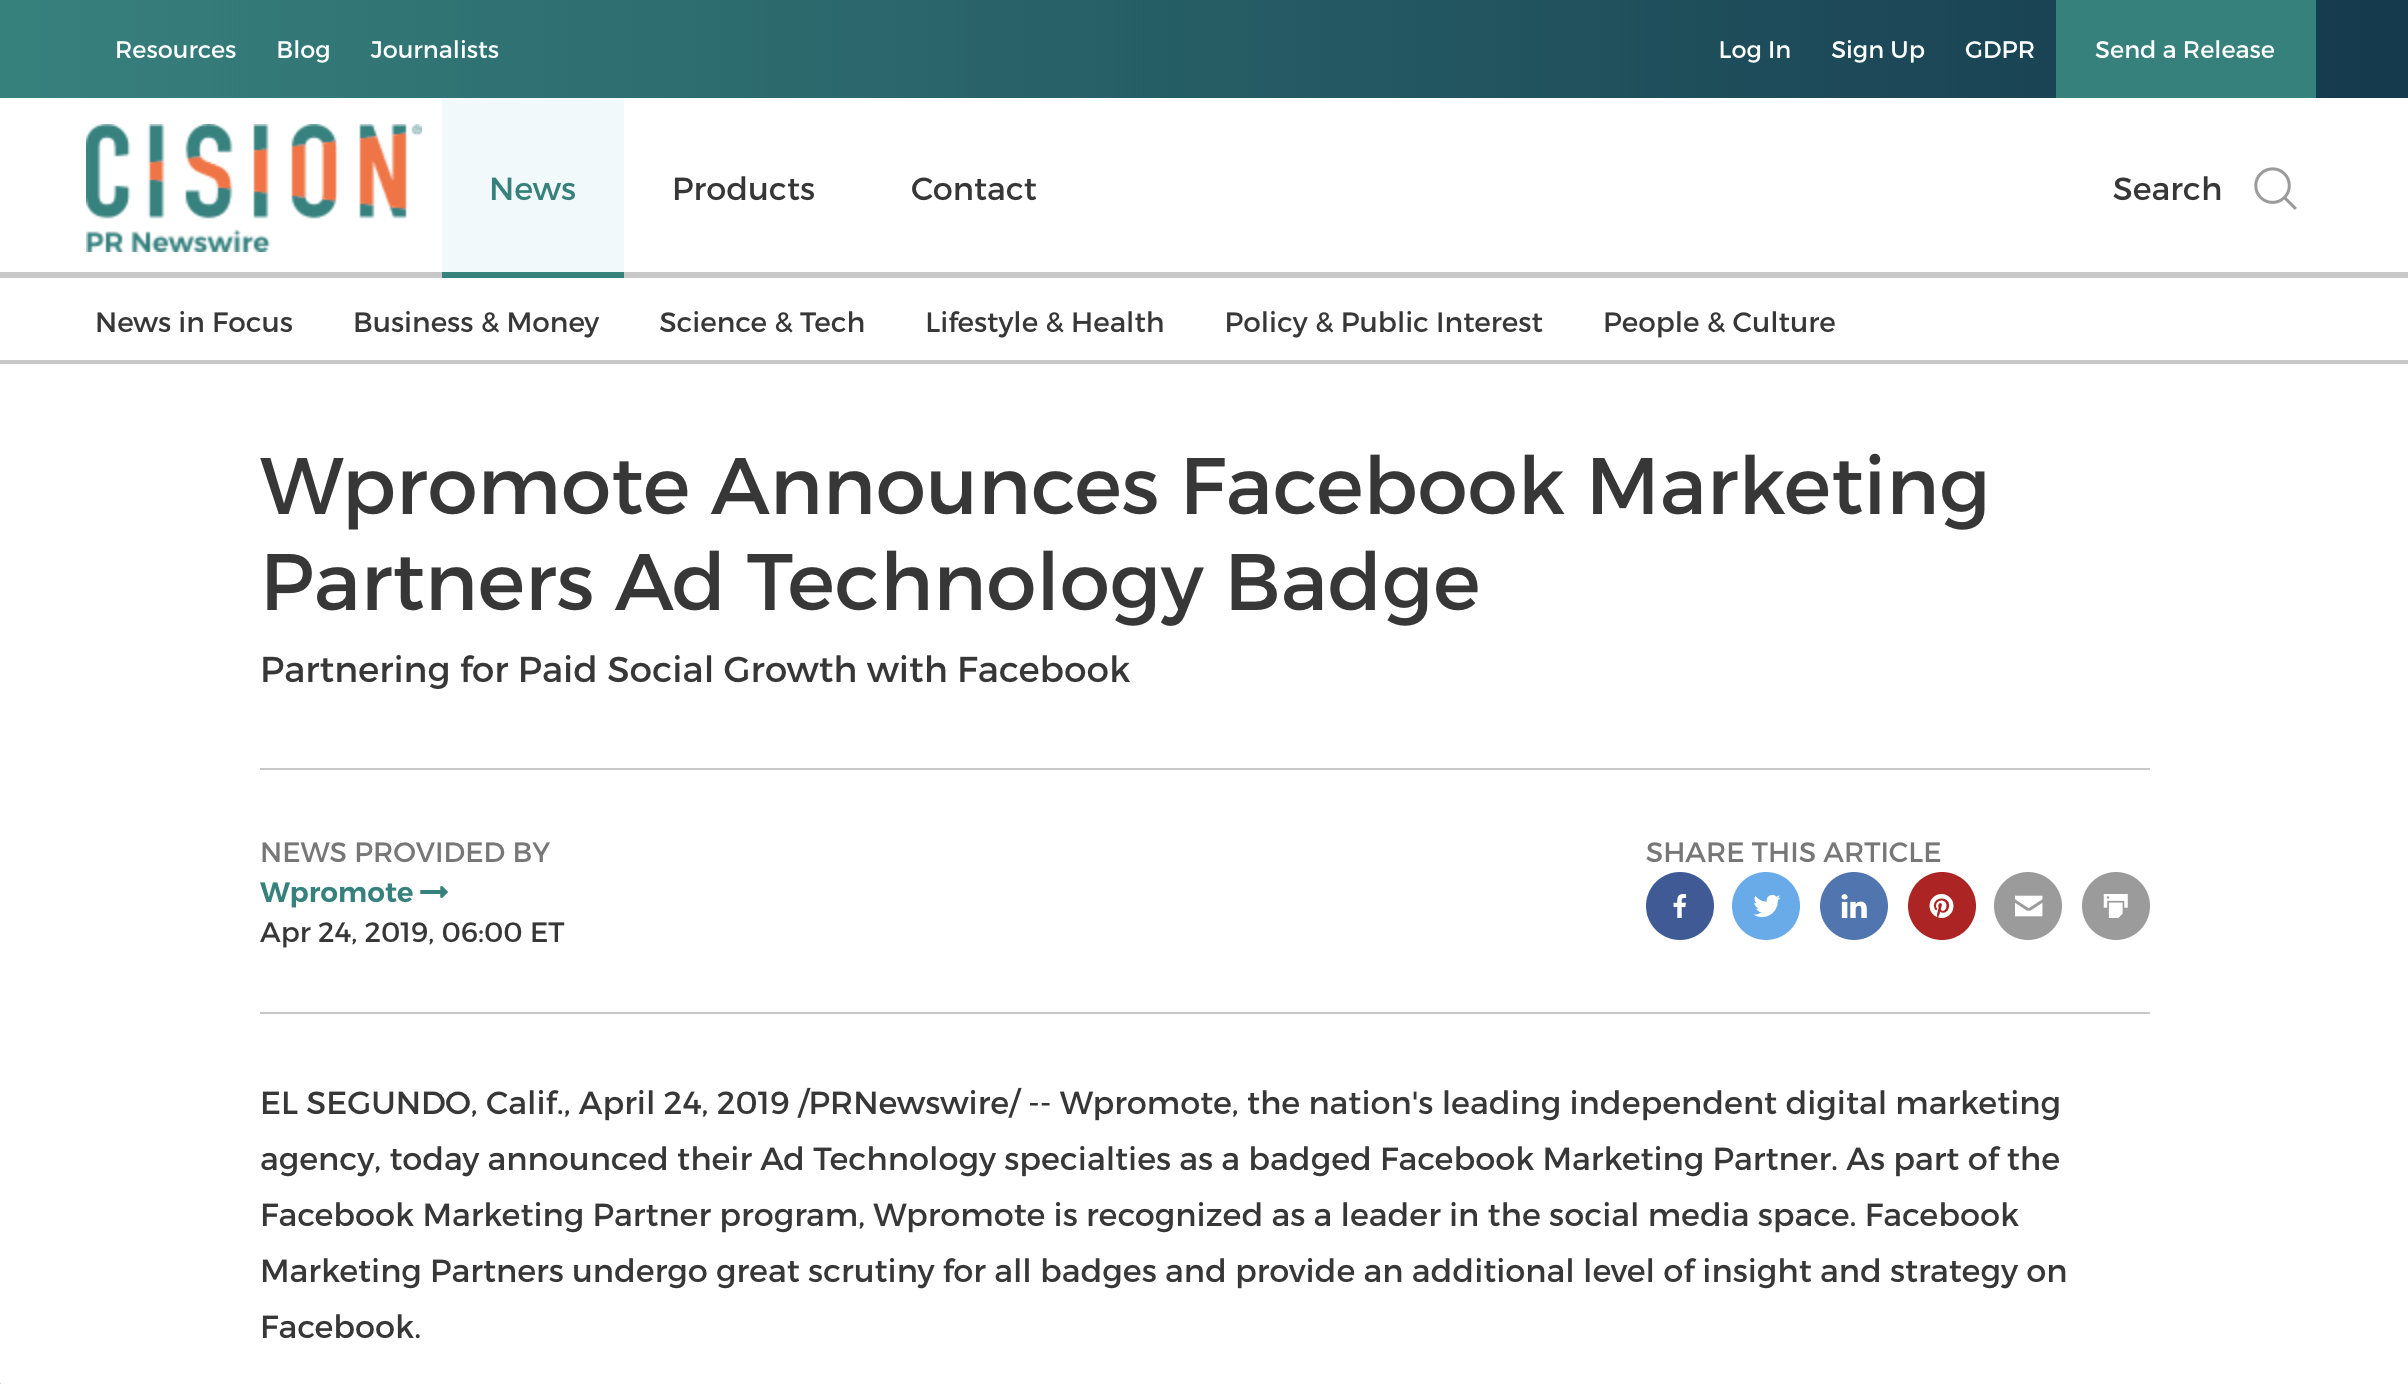 Wpromote's press release regarding the announcement of becoming a Facebook Marketing Partner.